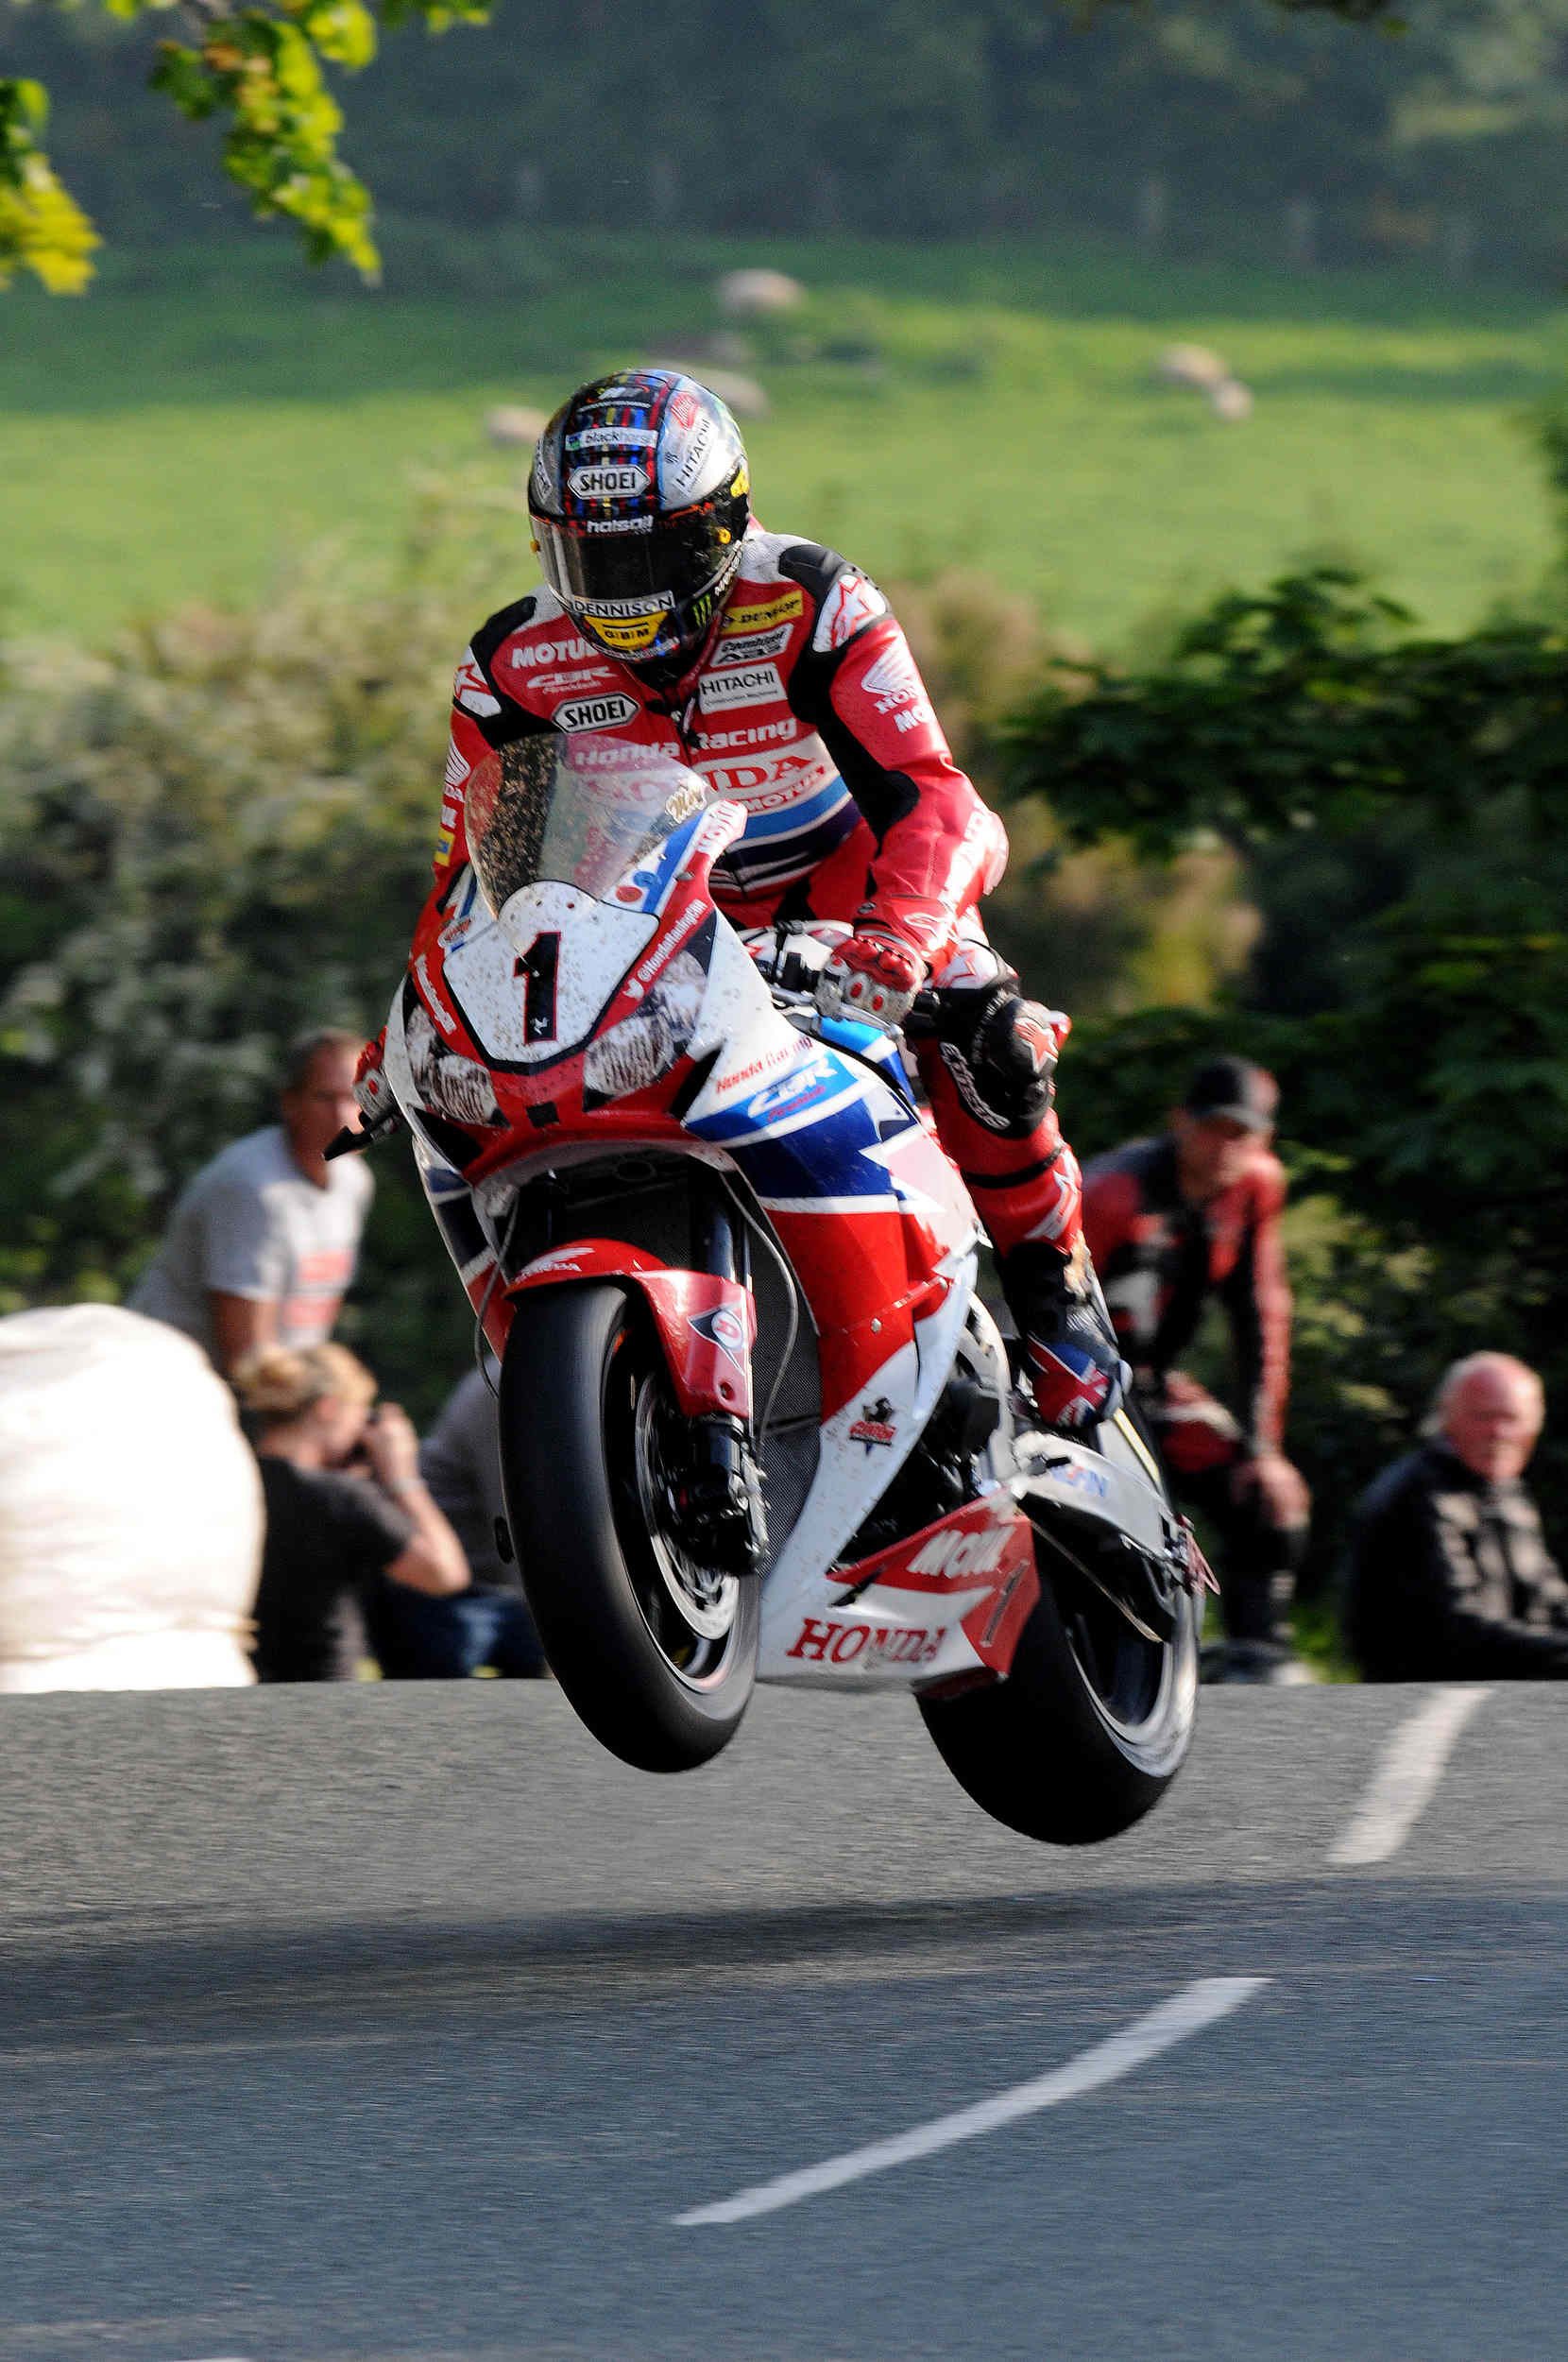 TT 2014 qualifying - John McGuinness